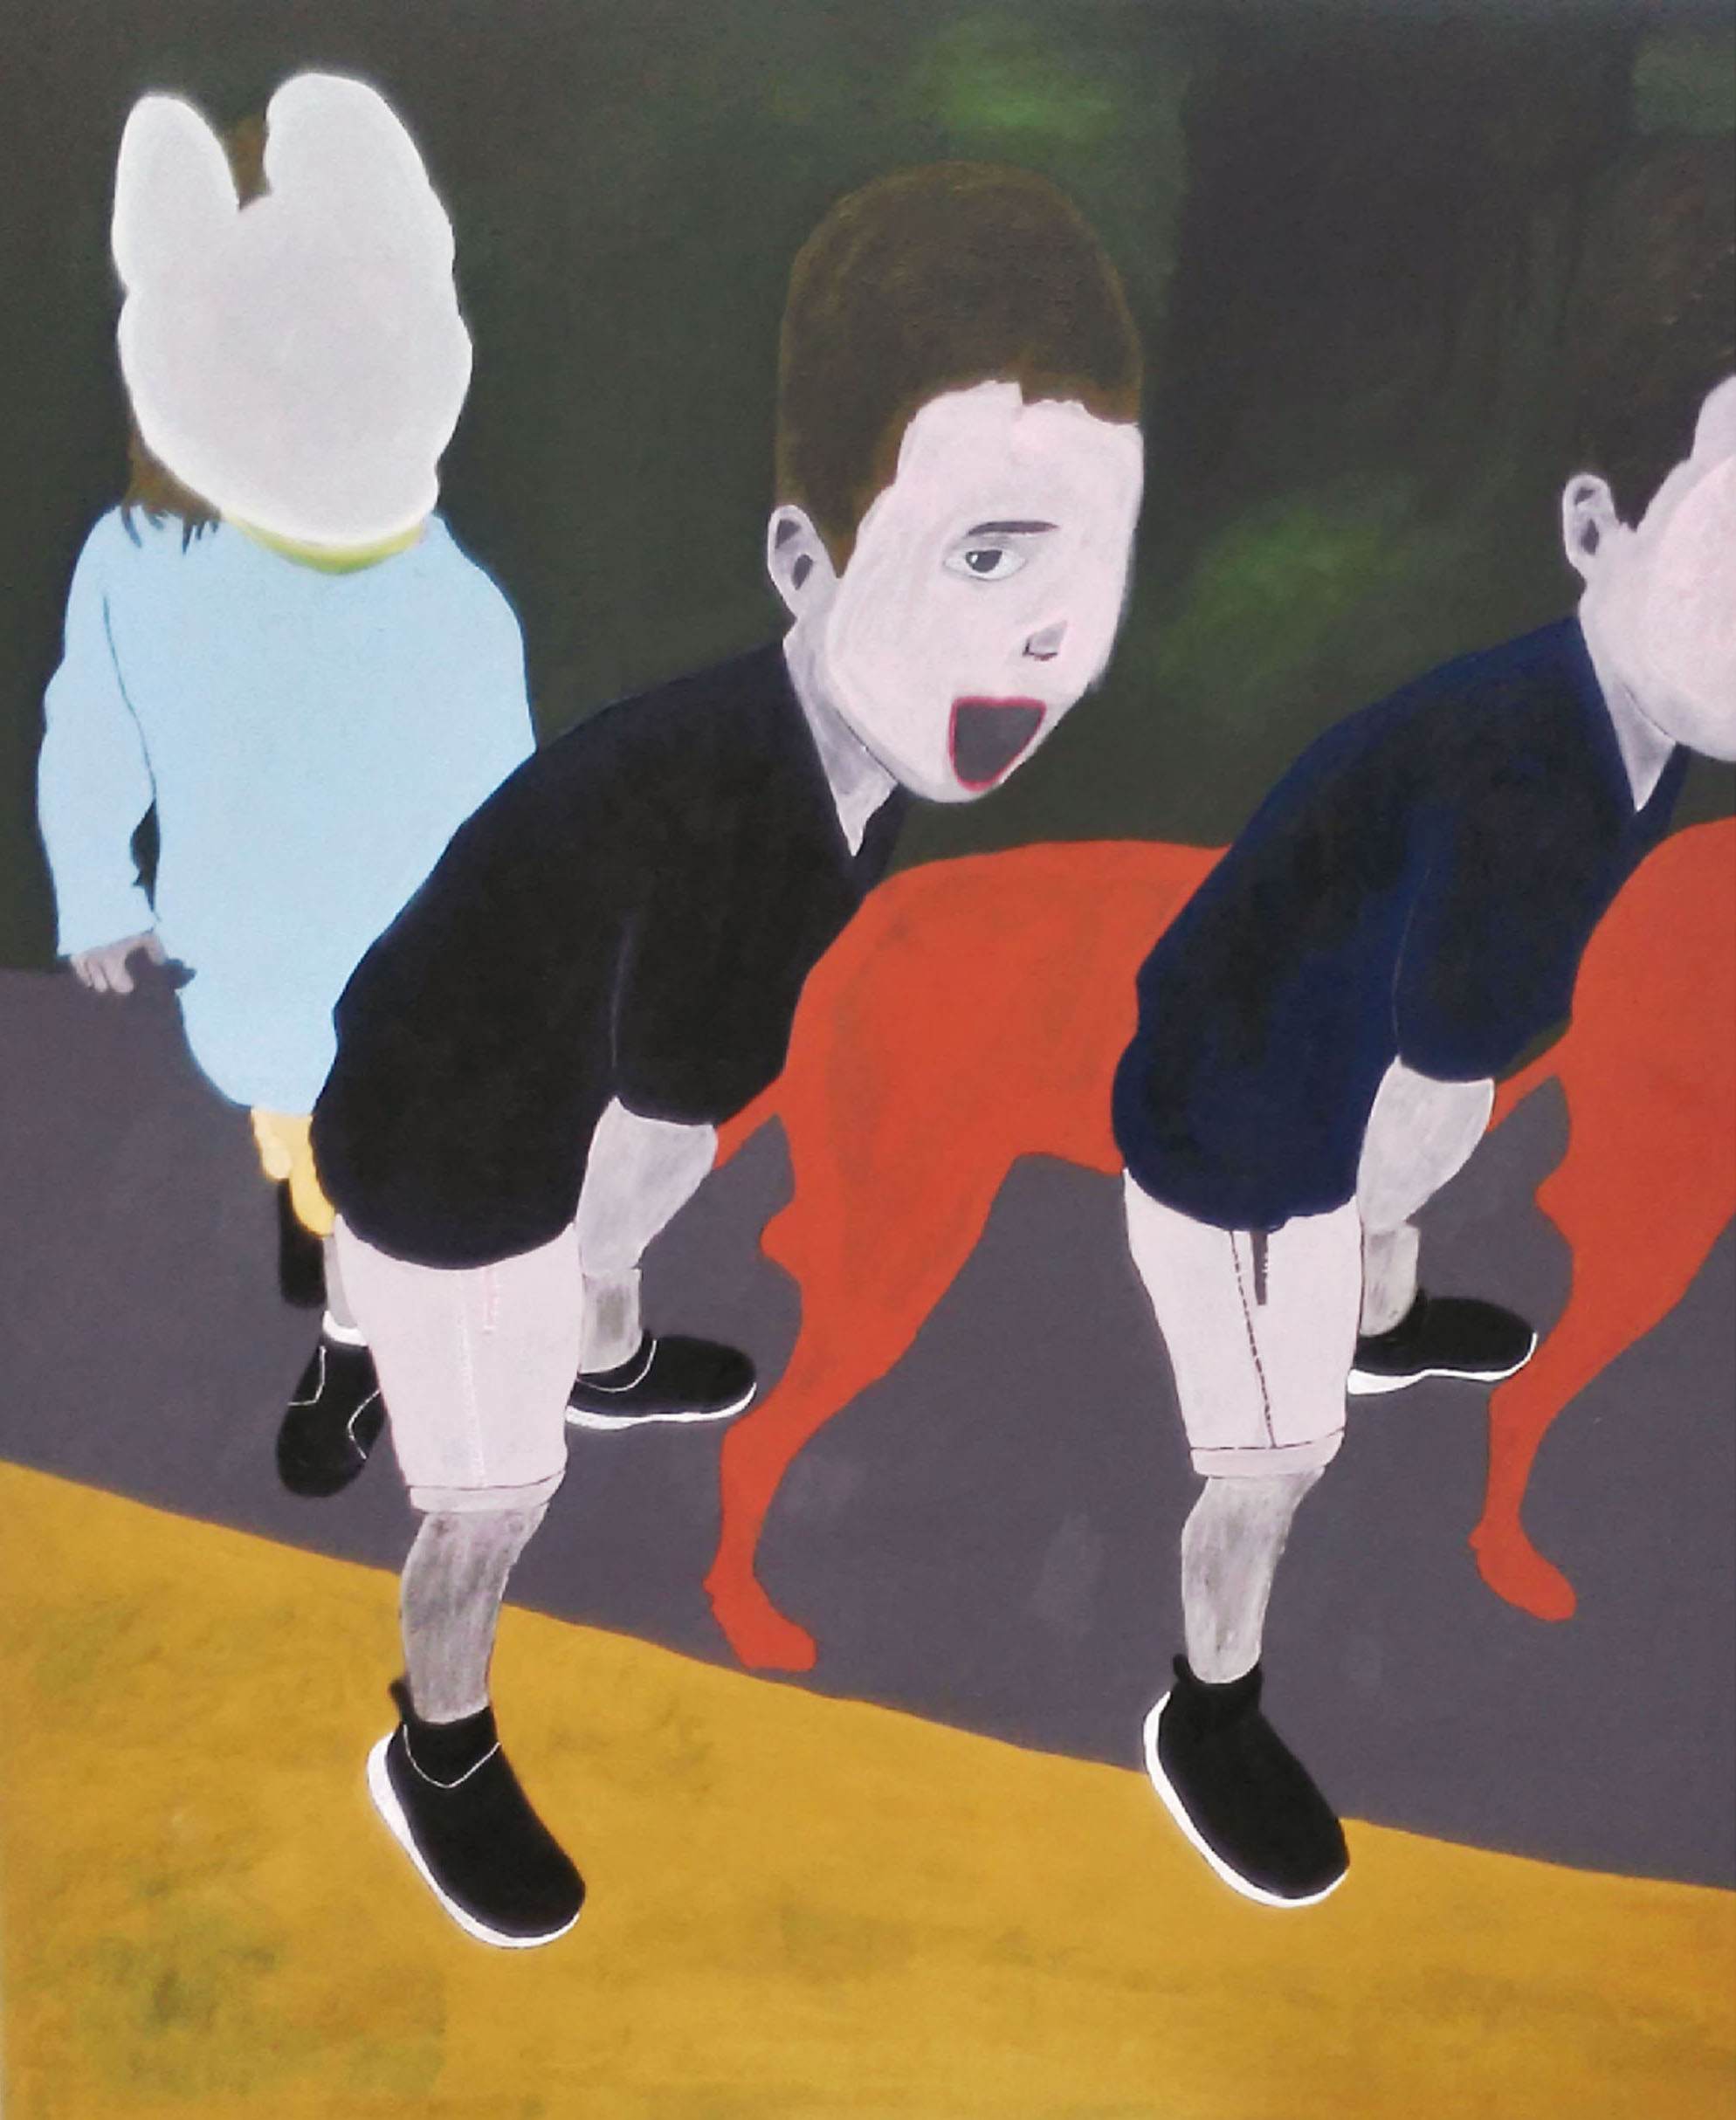 international contemporary art, artist to collect, available work, unique piece, works on canvas, painting, abstract, figurative, spain